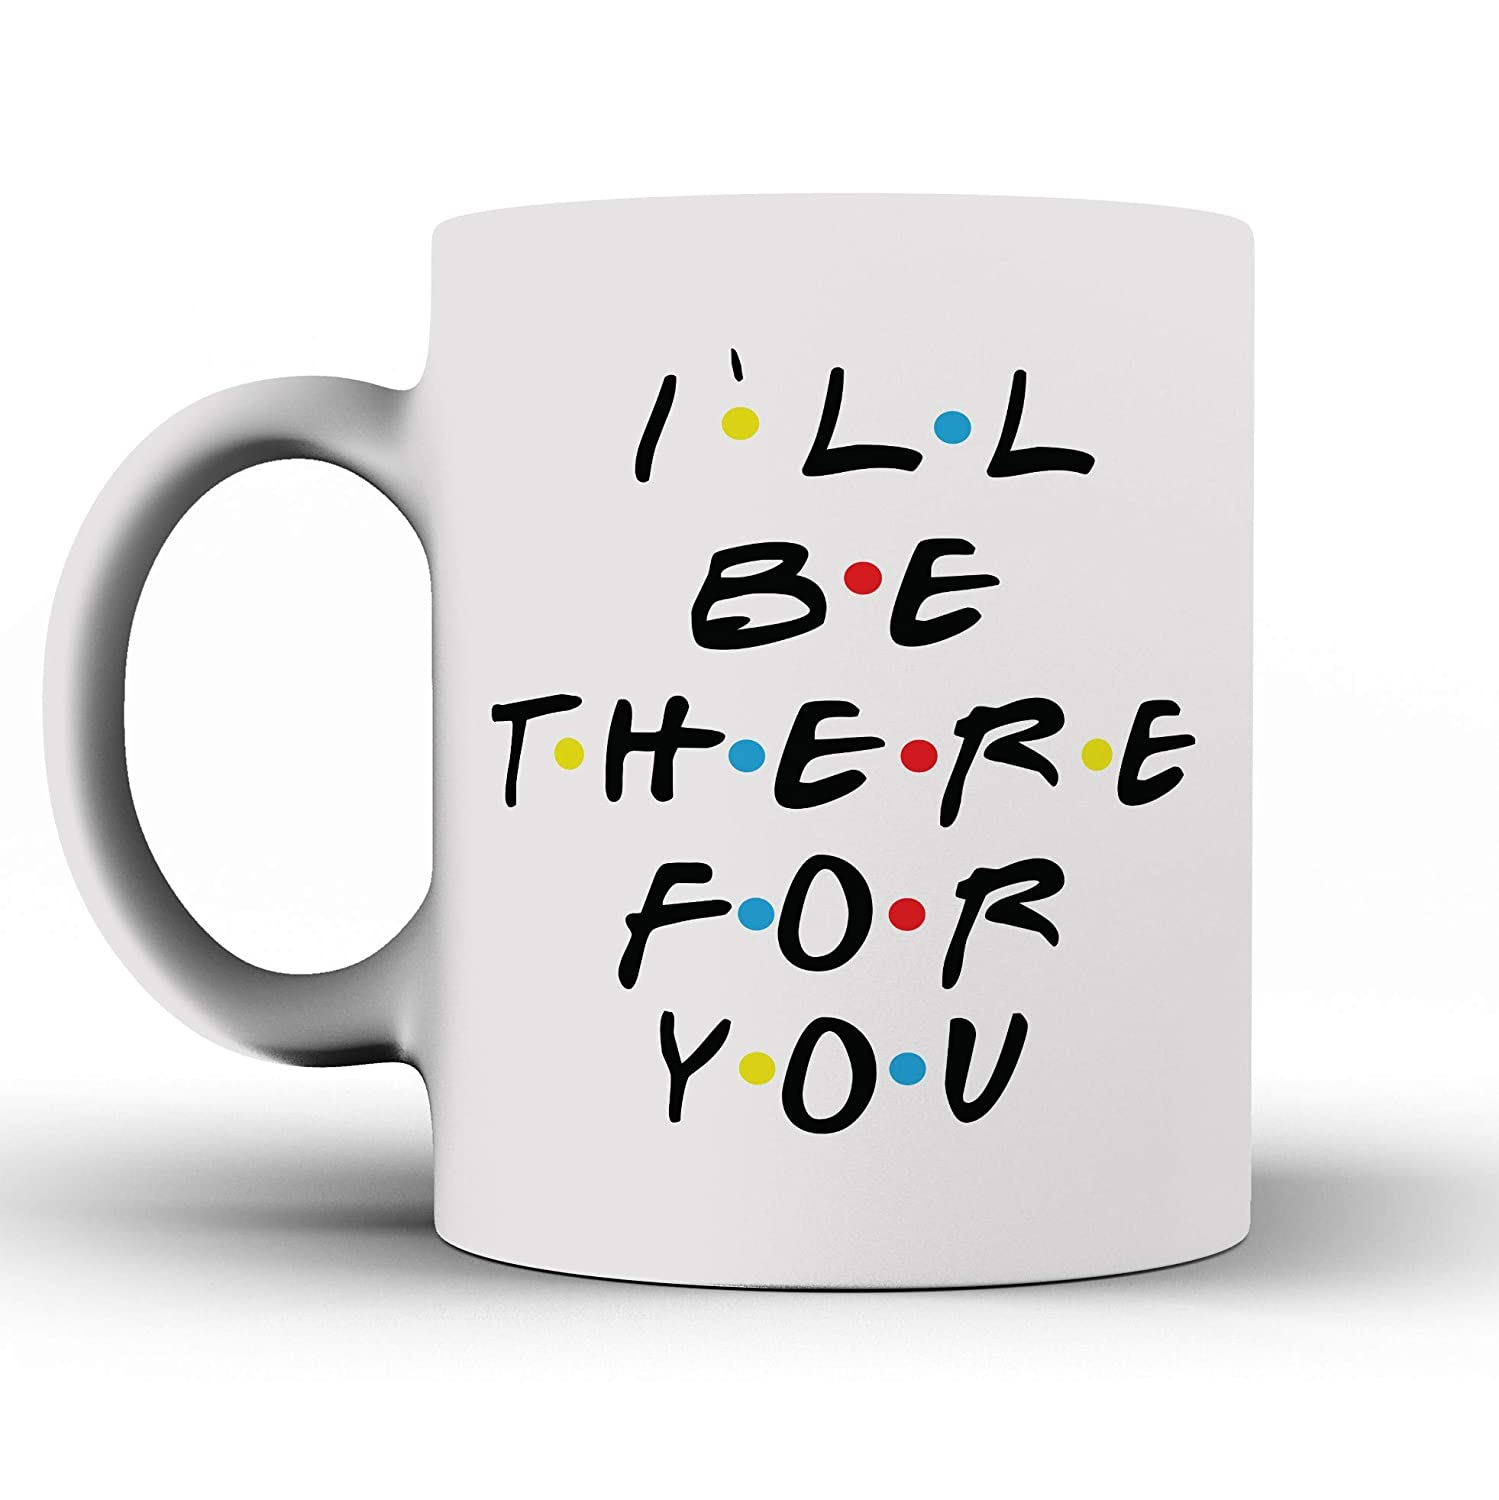 7d50cb05a4d1e Funny Mug - I`ll Be There for You - Mug Inspired By Friends - Coffee Mug -  Quote Inspired By Friends - Funny - Gifts - Ceramic Coffee Mug - Best ...